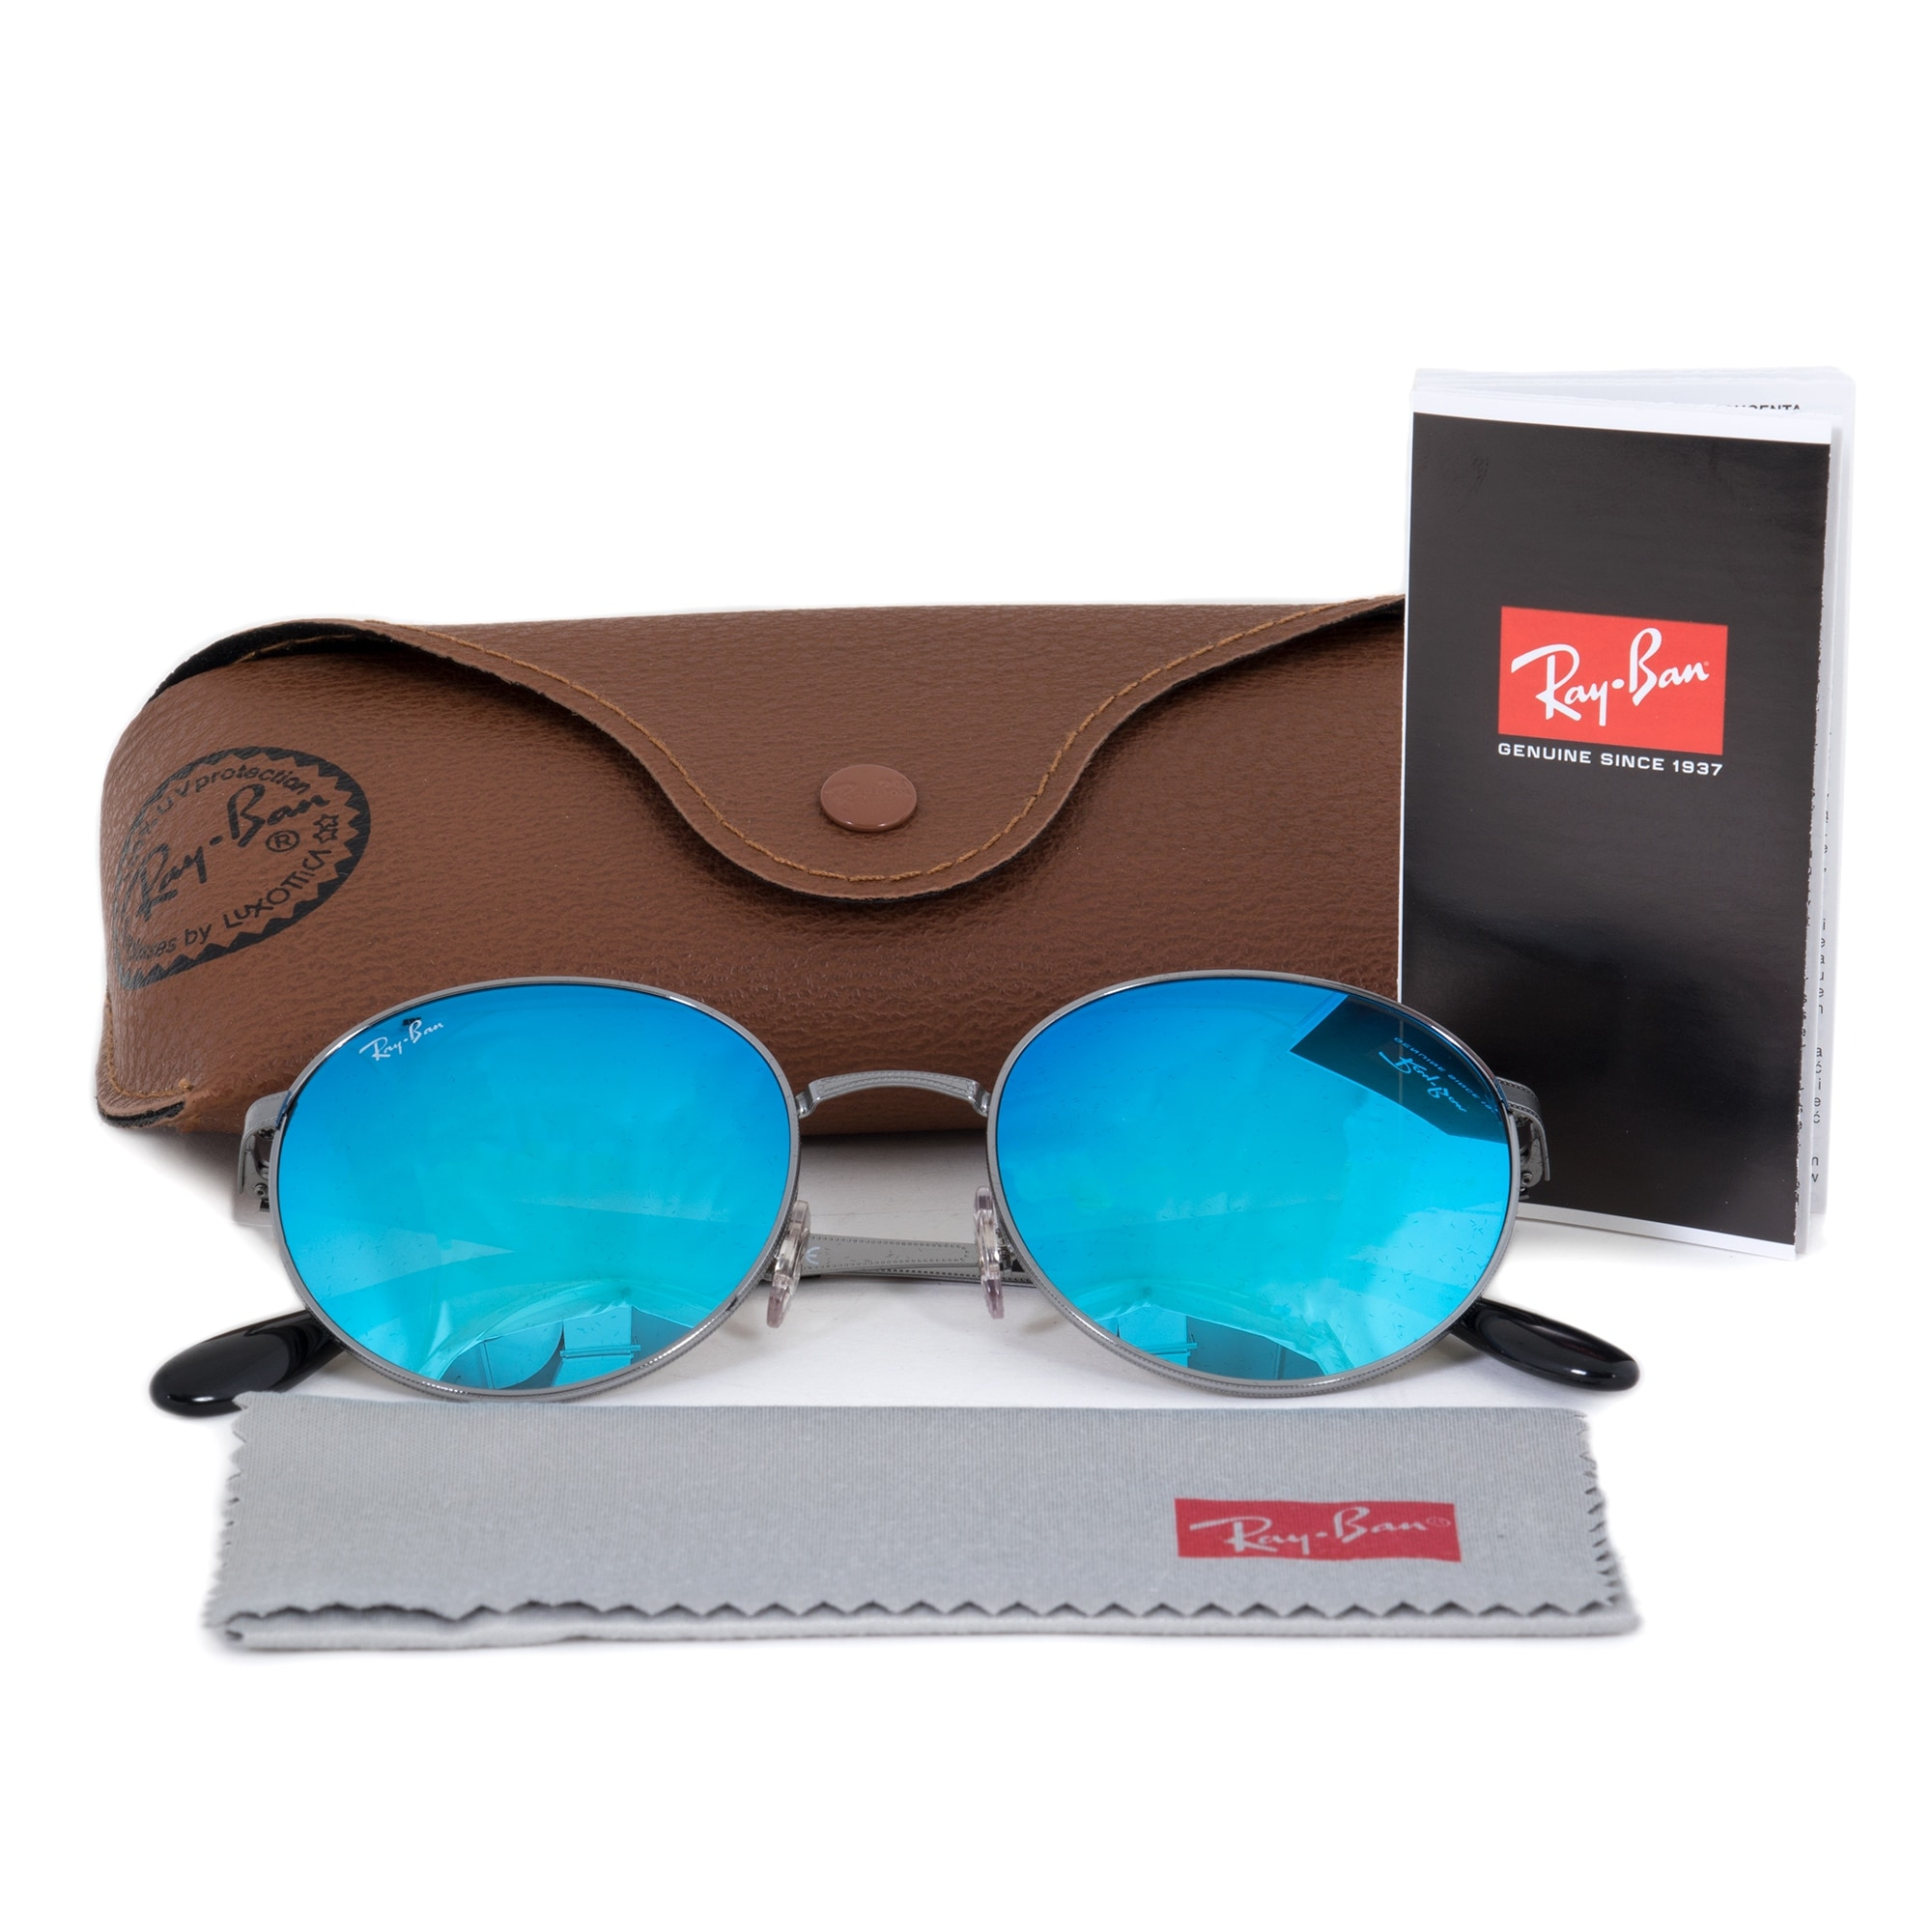 01c8cbd905c5e Shop Ray-Ban Round Sunglasses RB3537 00455 51